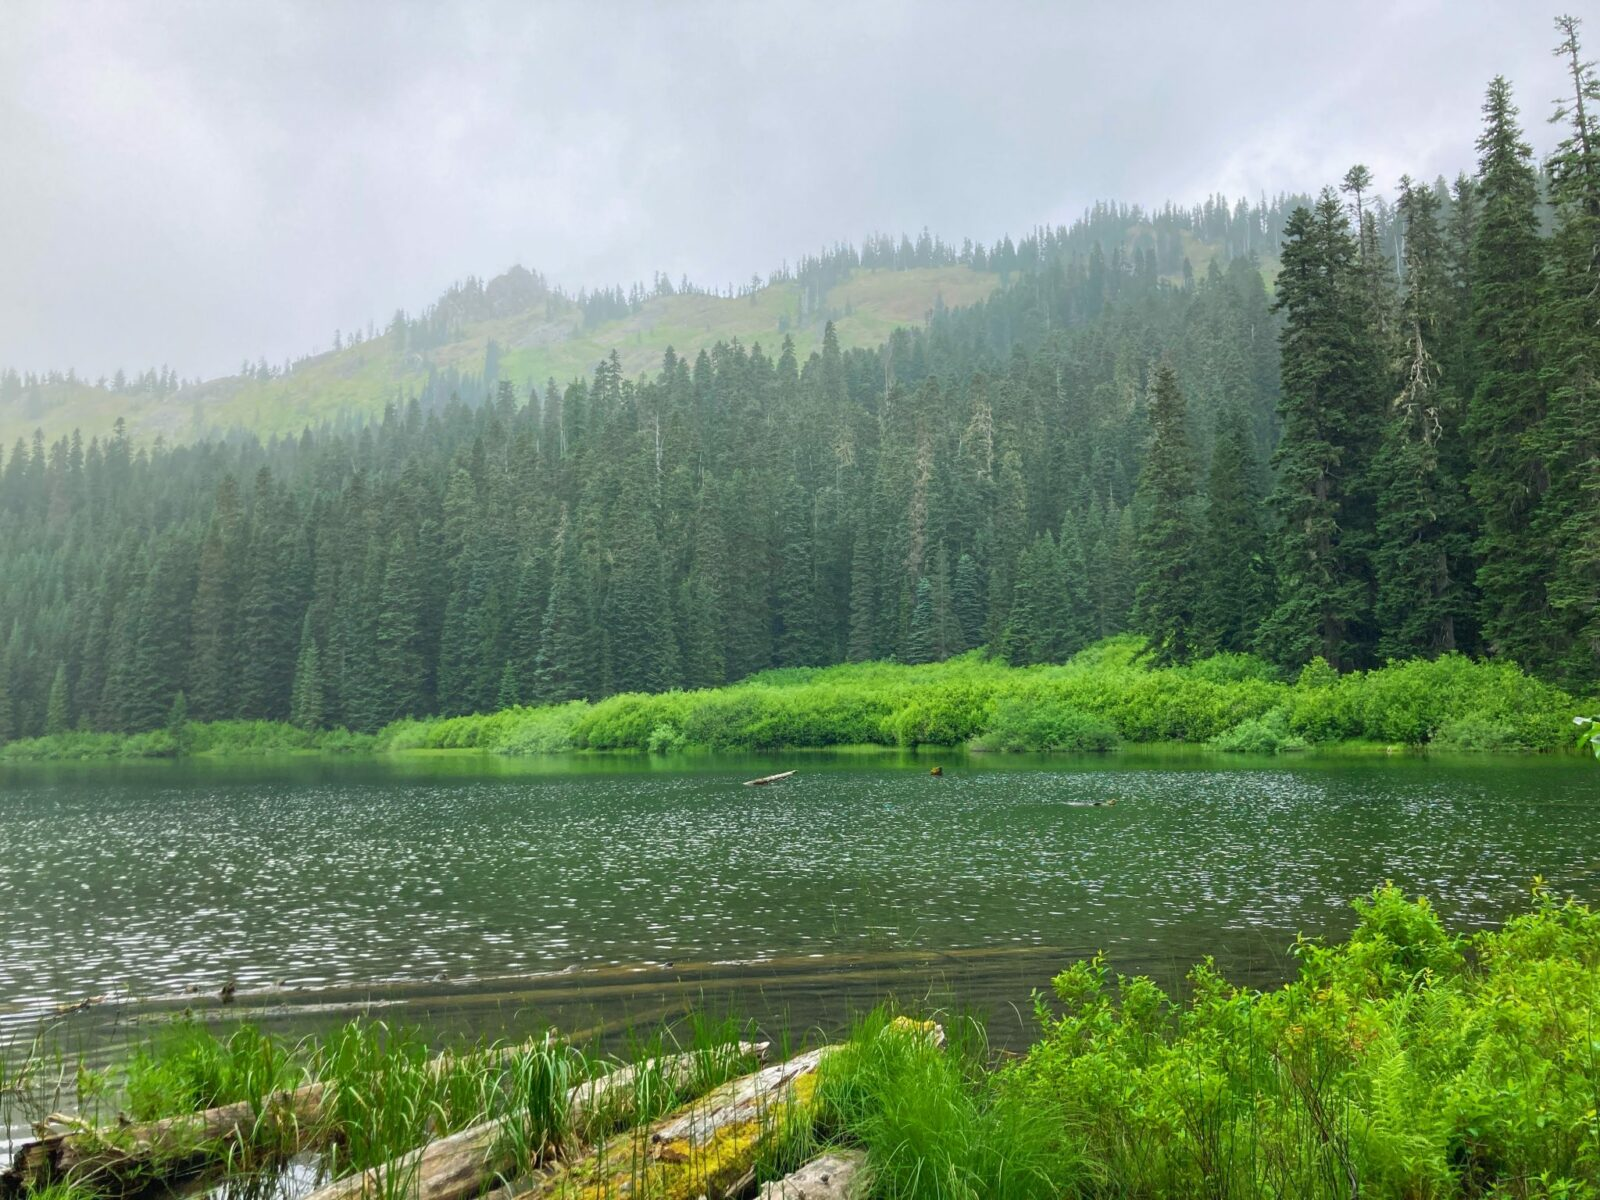 Cottonwood Lake, a smaller and less busy lake along the Mirror Lake trail. Clouds surround the mountains and the lake is ringed by evergreen trees and green undergrowth. There are a few logs in the foreground